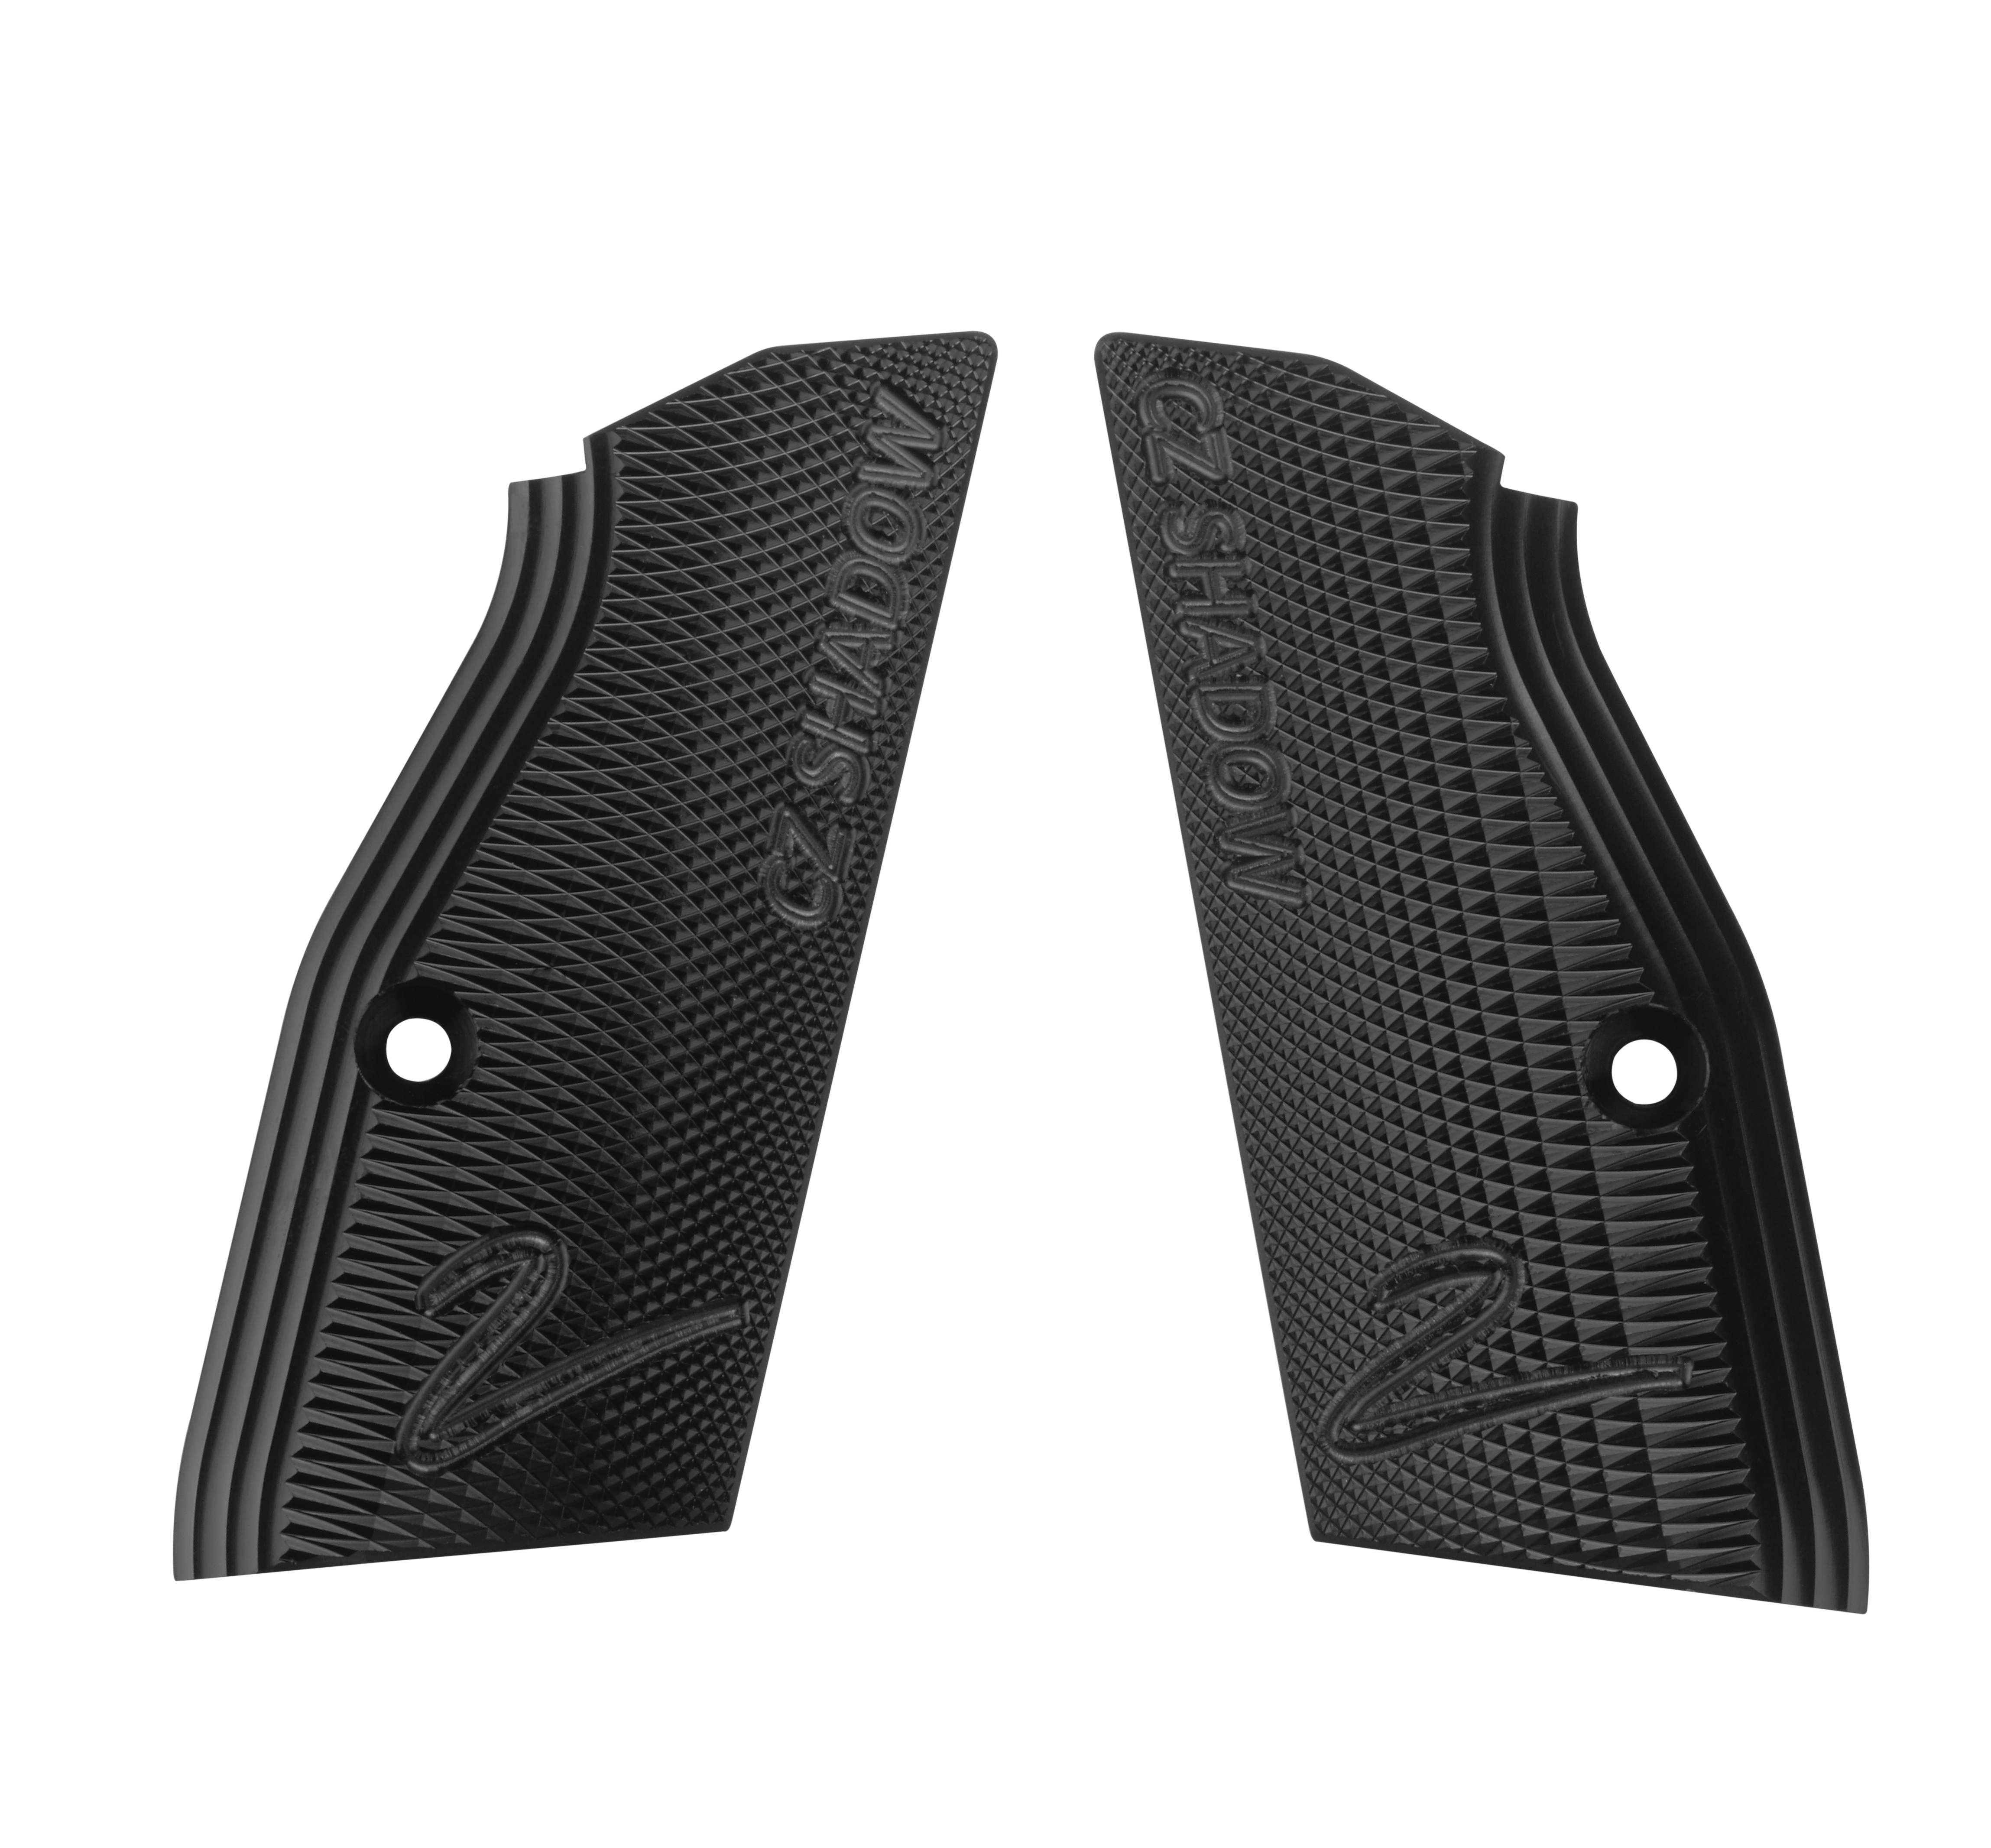 CZ SHADOW 2 Short Premium Hard Elox Grips with Funnel - Black - CZUB®